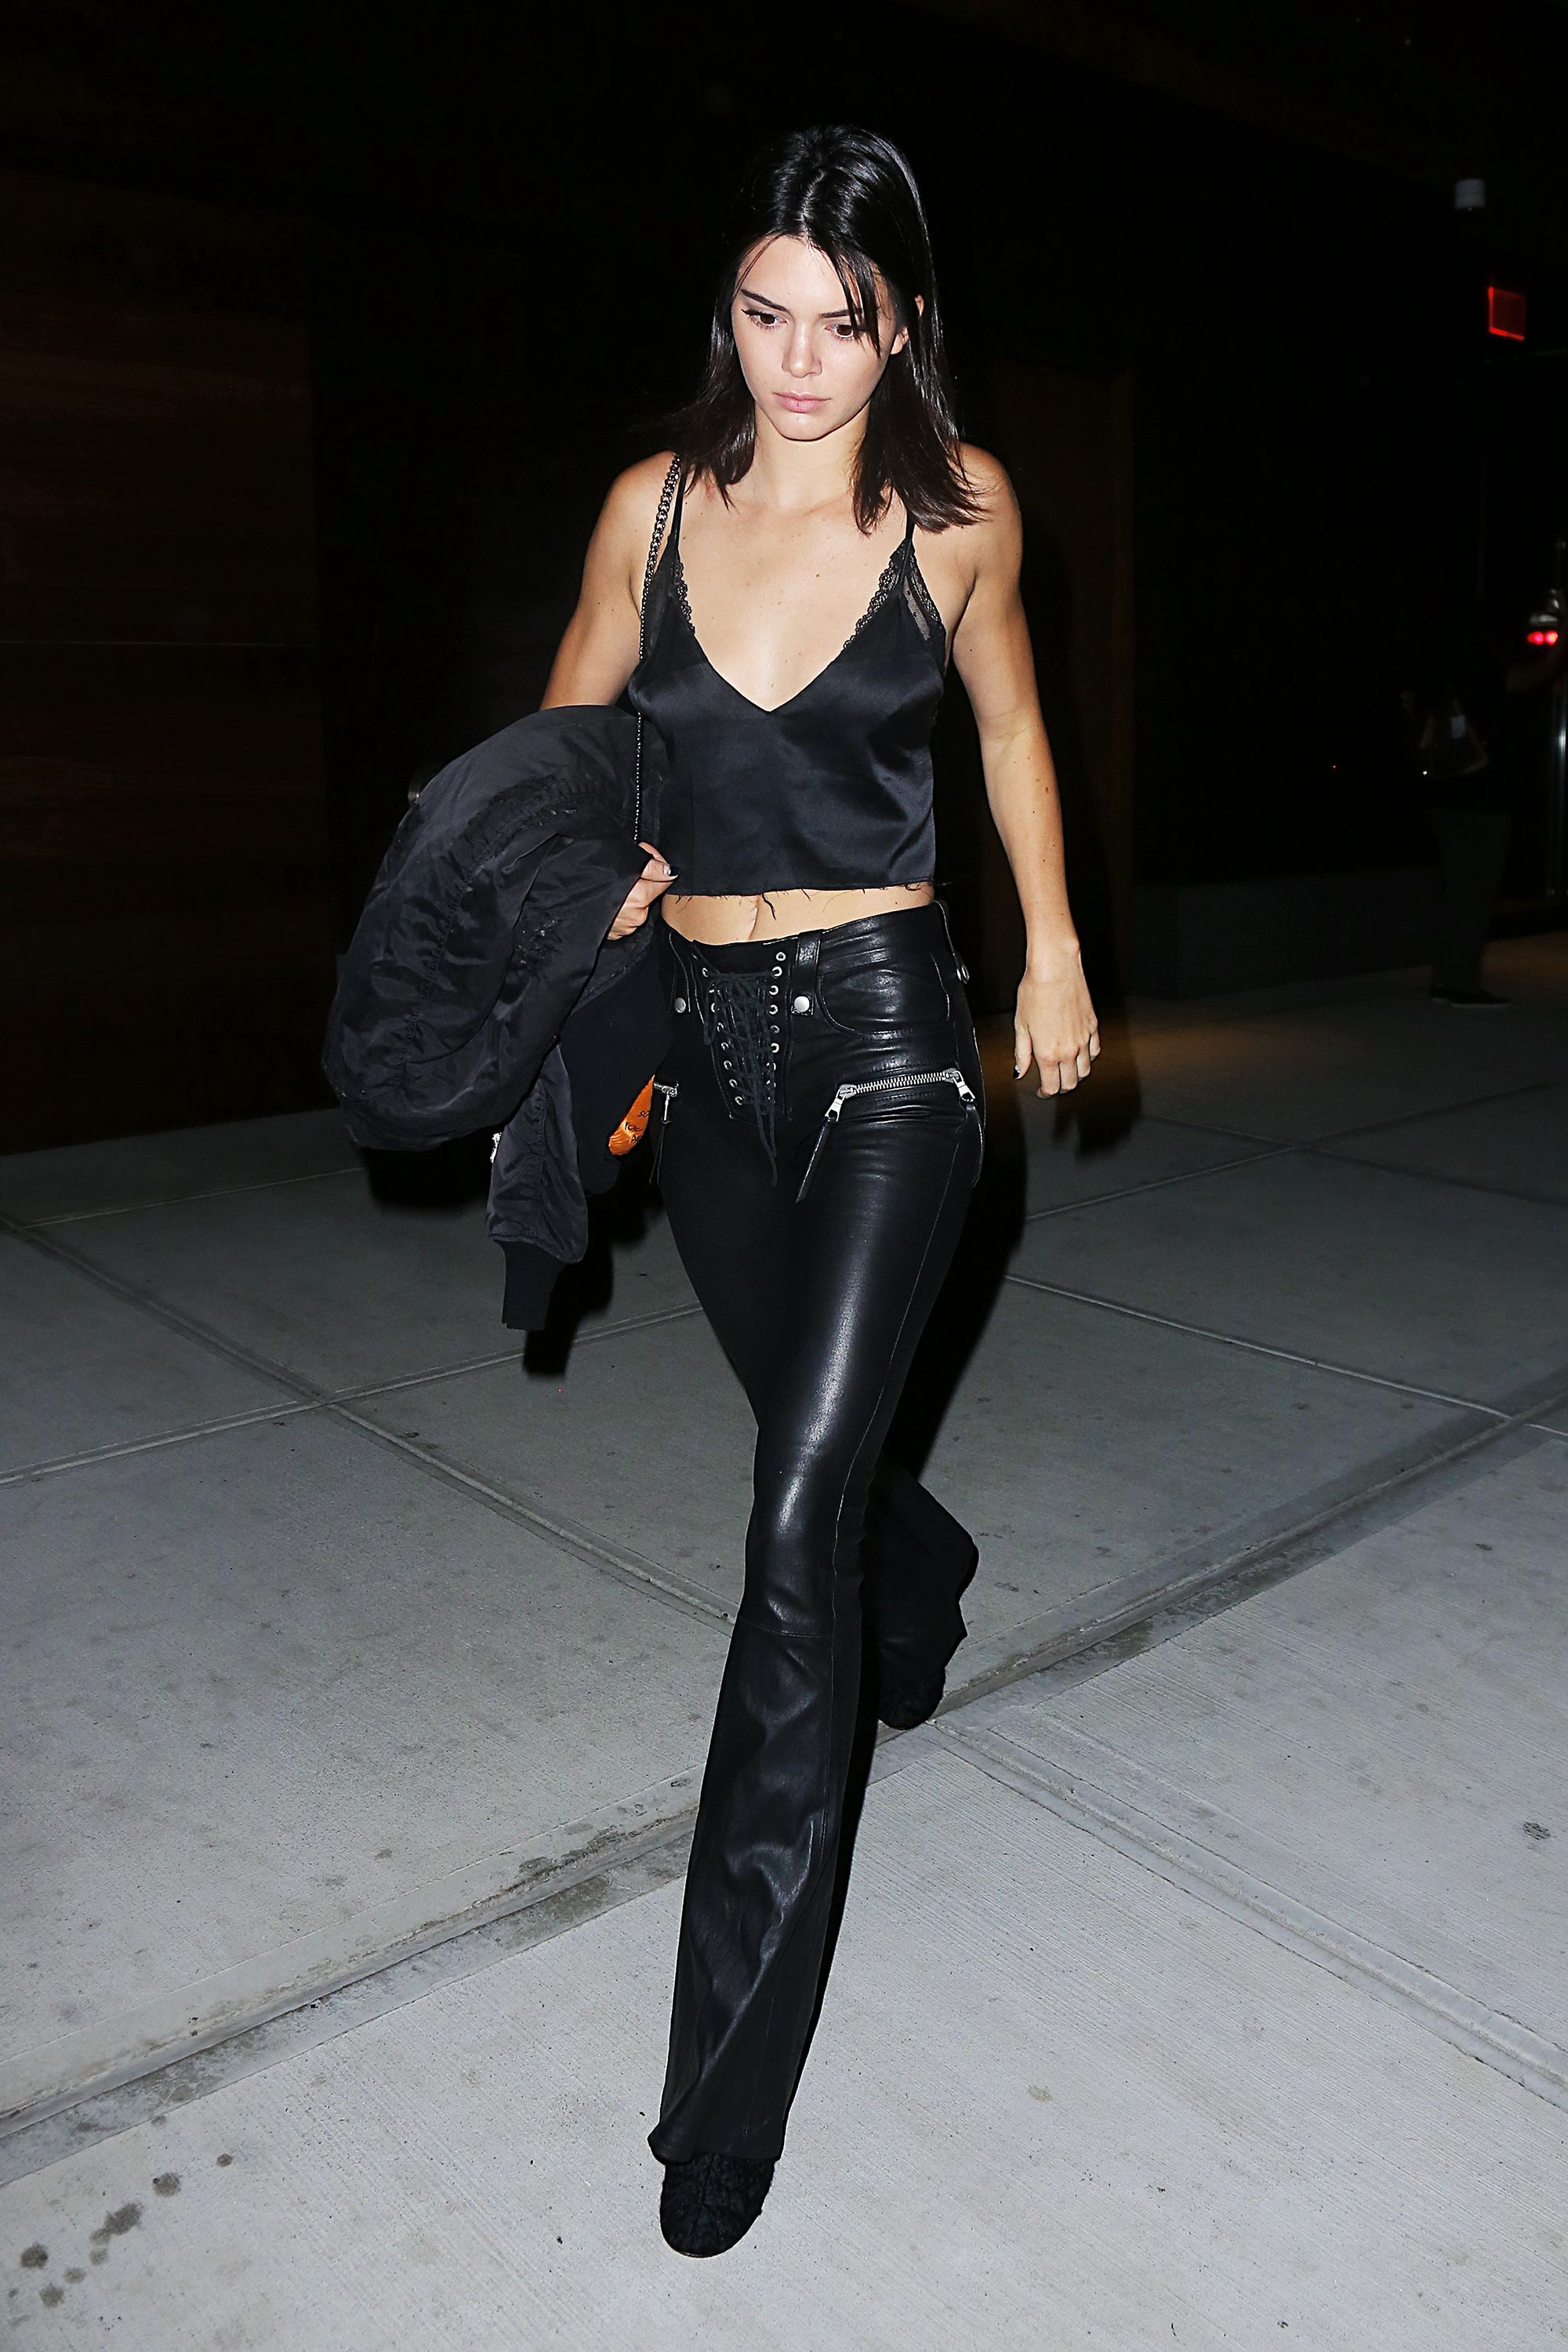 b816ba60d5e Kendall Jenner Wore the Craziest Bike Ride Look in NYC